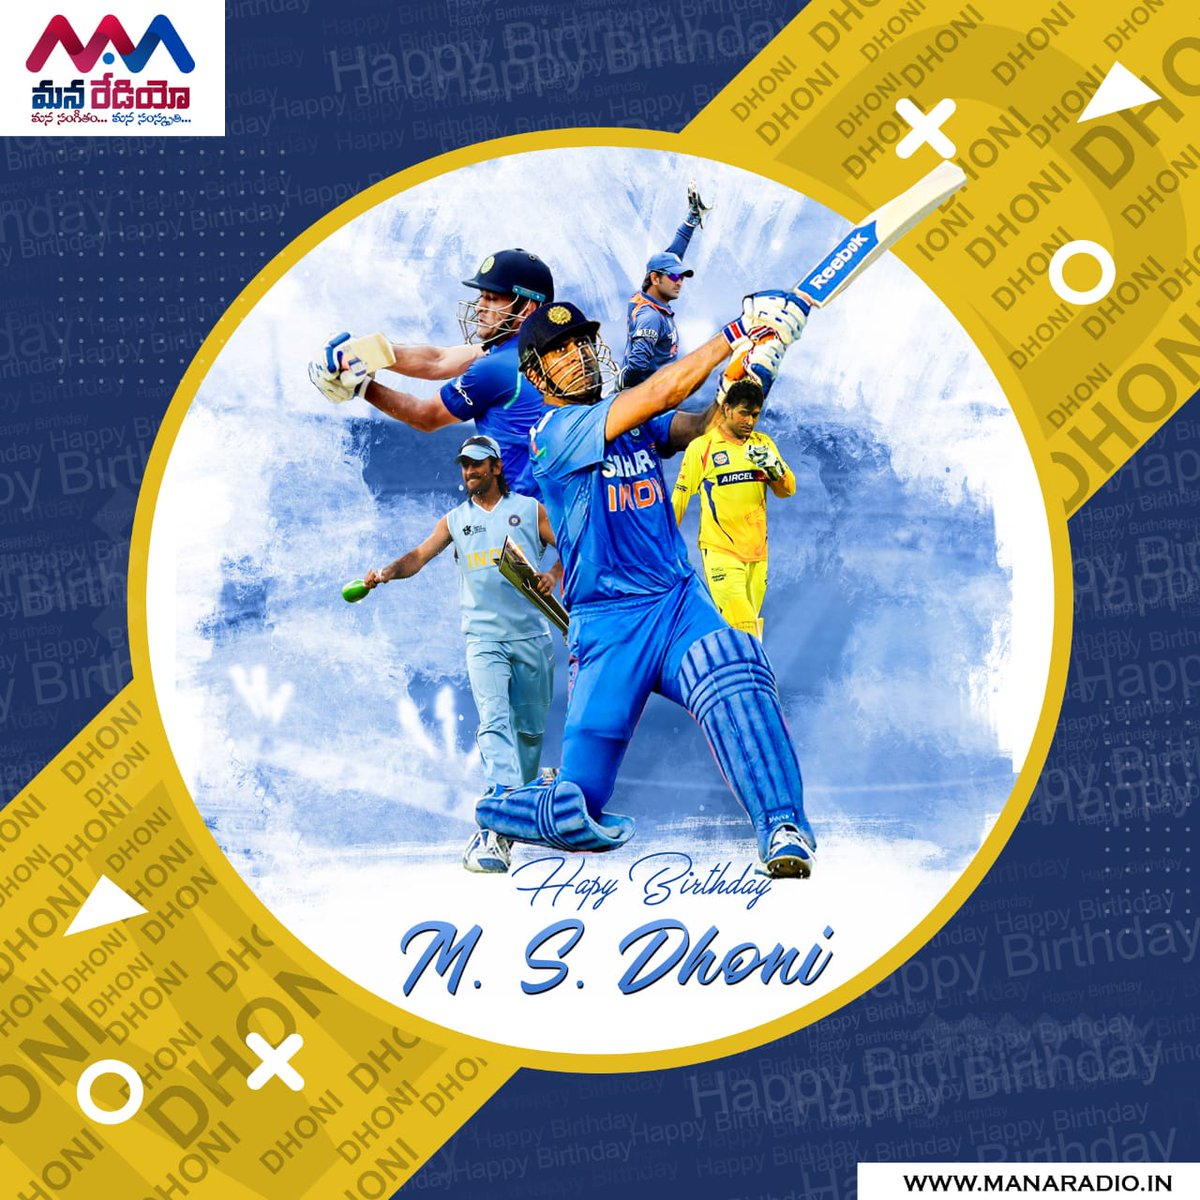 Here's wishing one of the legendary cricketers Mr. Cool Best Finisher MS Dhoni a very Happy Birthday! from #ManaRadio  #MSDhoni #HappyBirthdayDhoni #dhonibirthdaycdp #MSDians  #Dhonibirthday #DhoniBirthdaySpecial #onlineradio #teluguradio @msdhonipic.twitter.com/eCI6fLYhVk